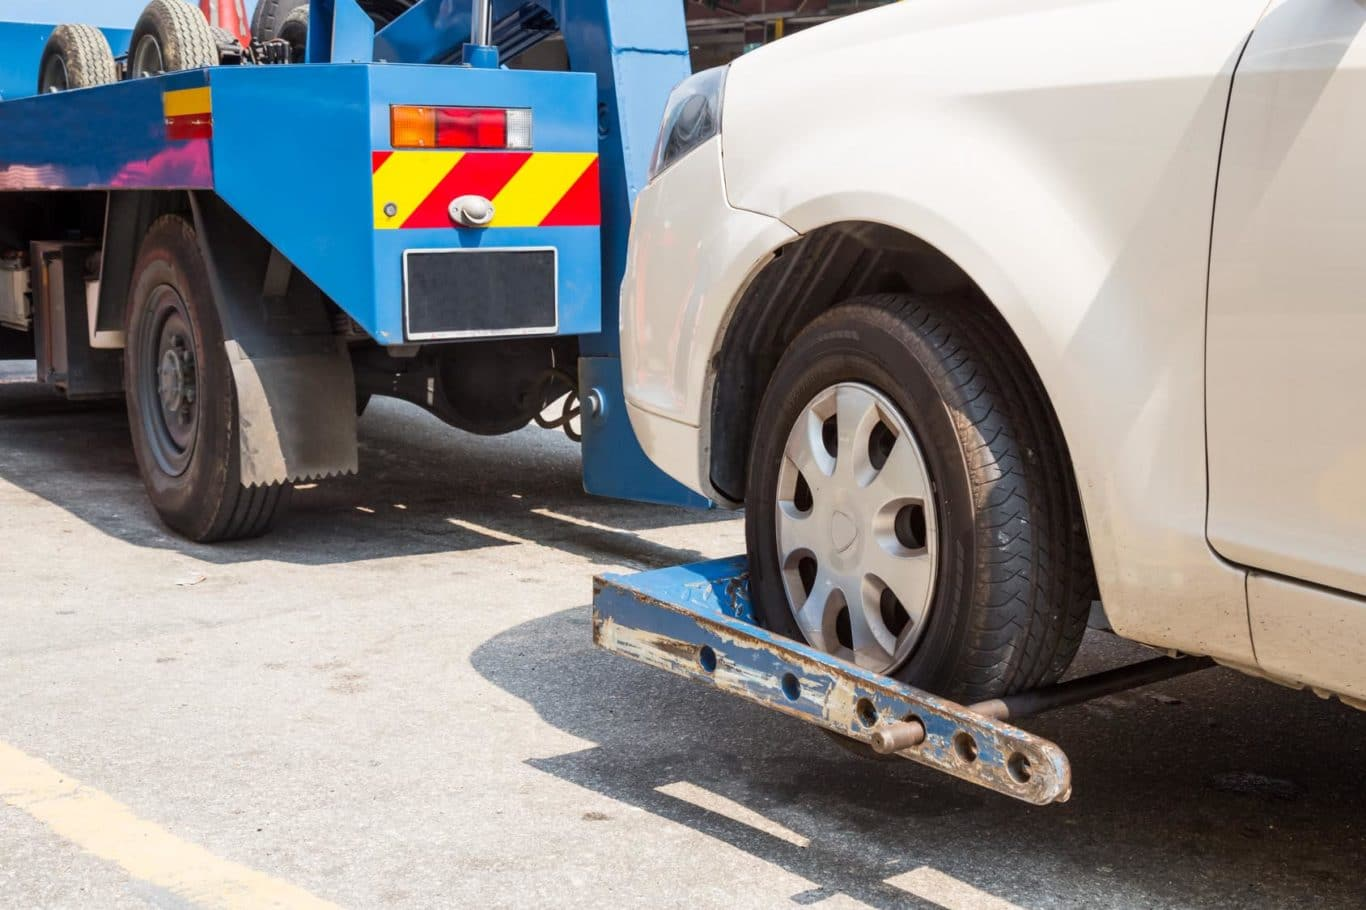 Stratford-on-Slaney expert Roadside Assistance services